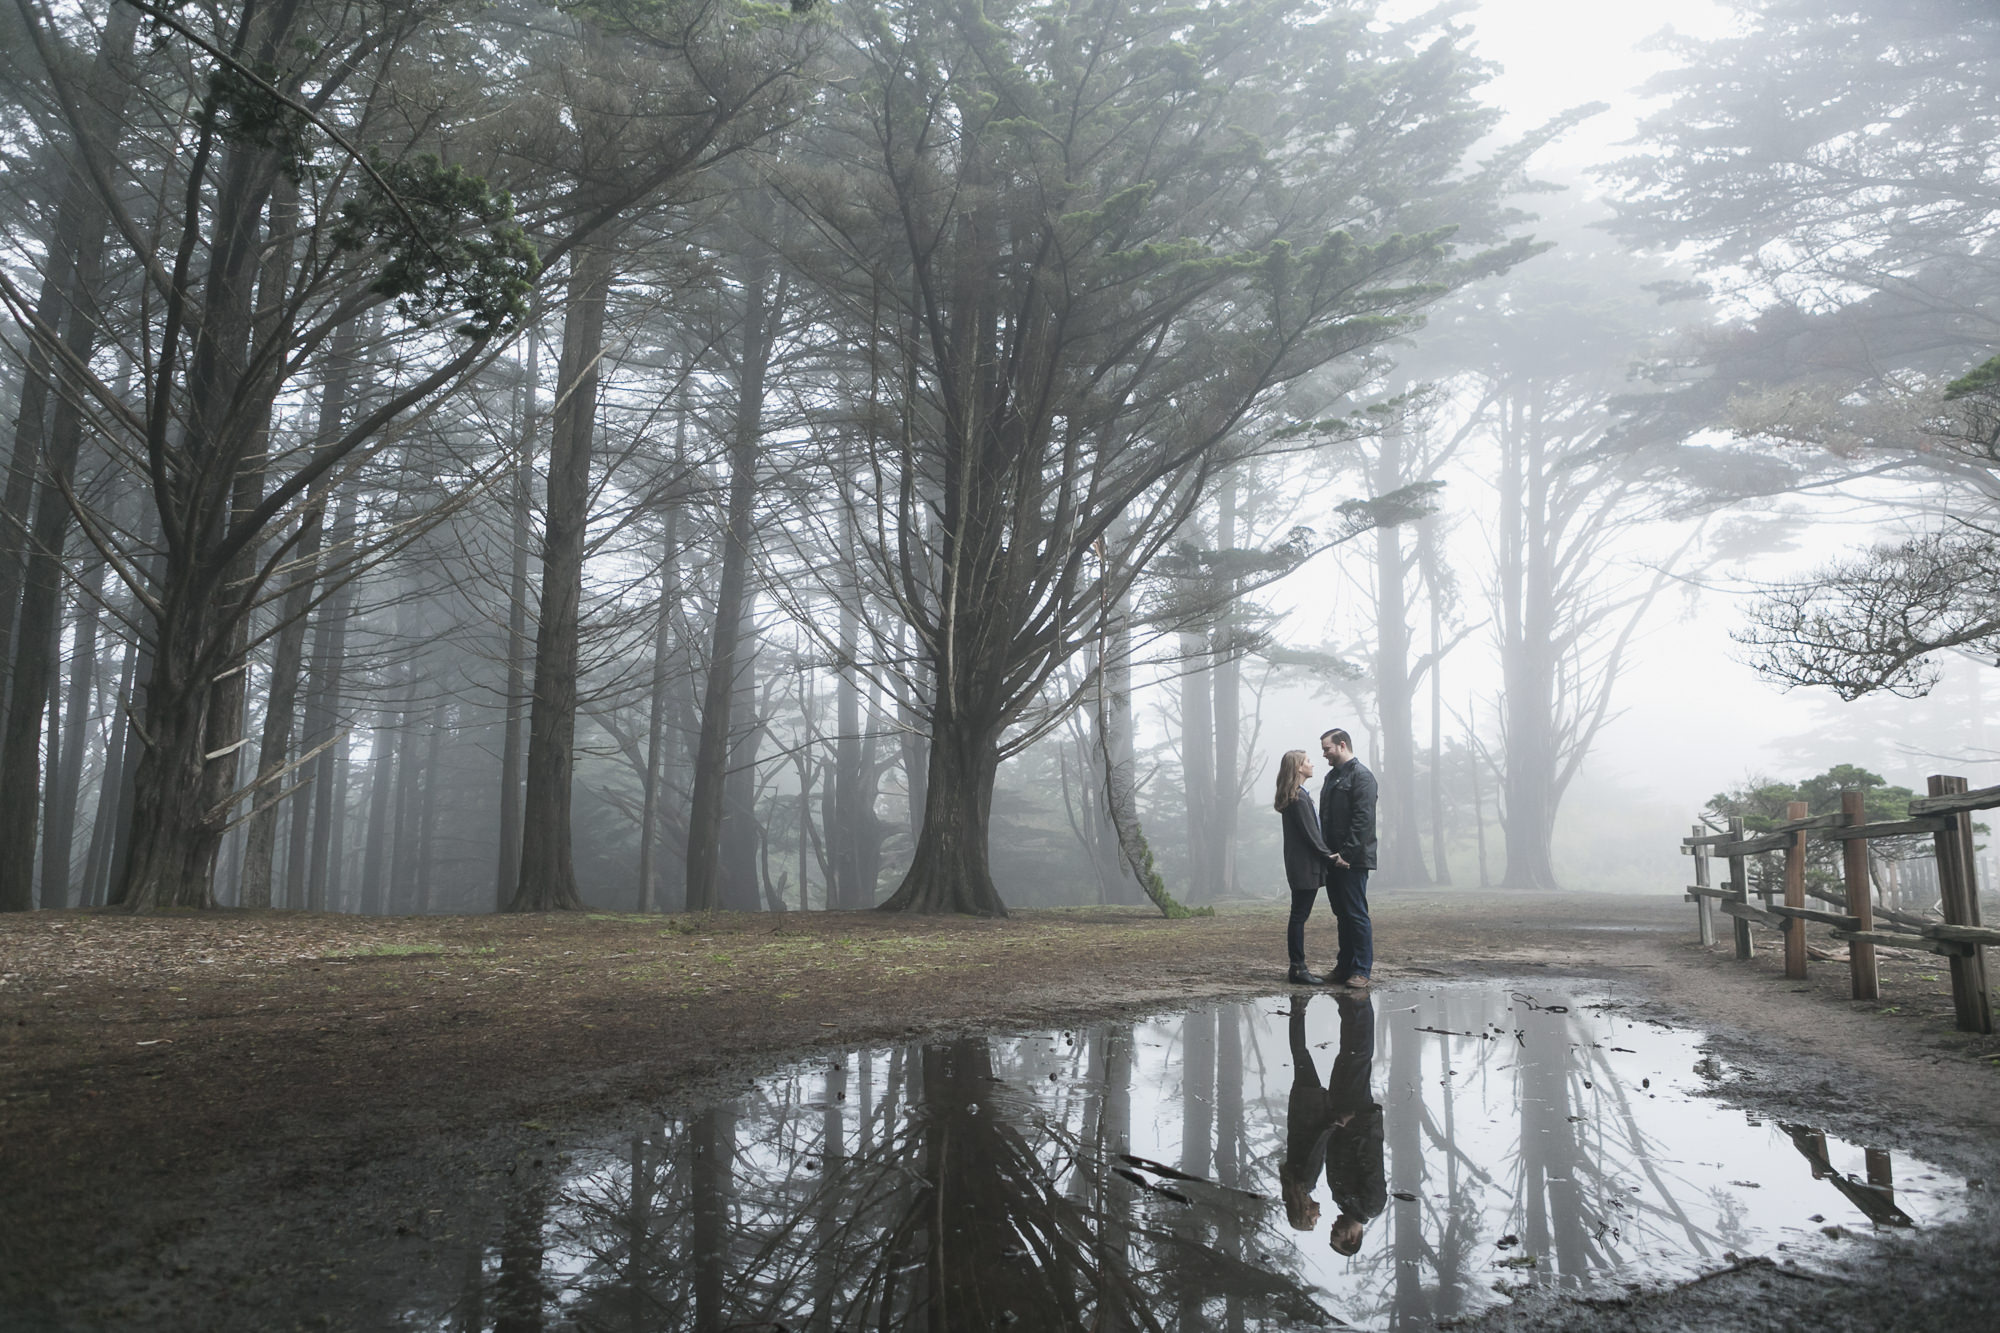 Foggy engagement session at the Fitzgerald Marine Reserve near Half Moon Bay with reflection